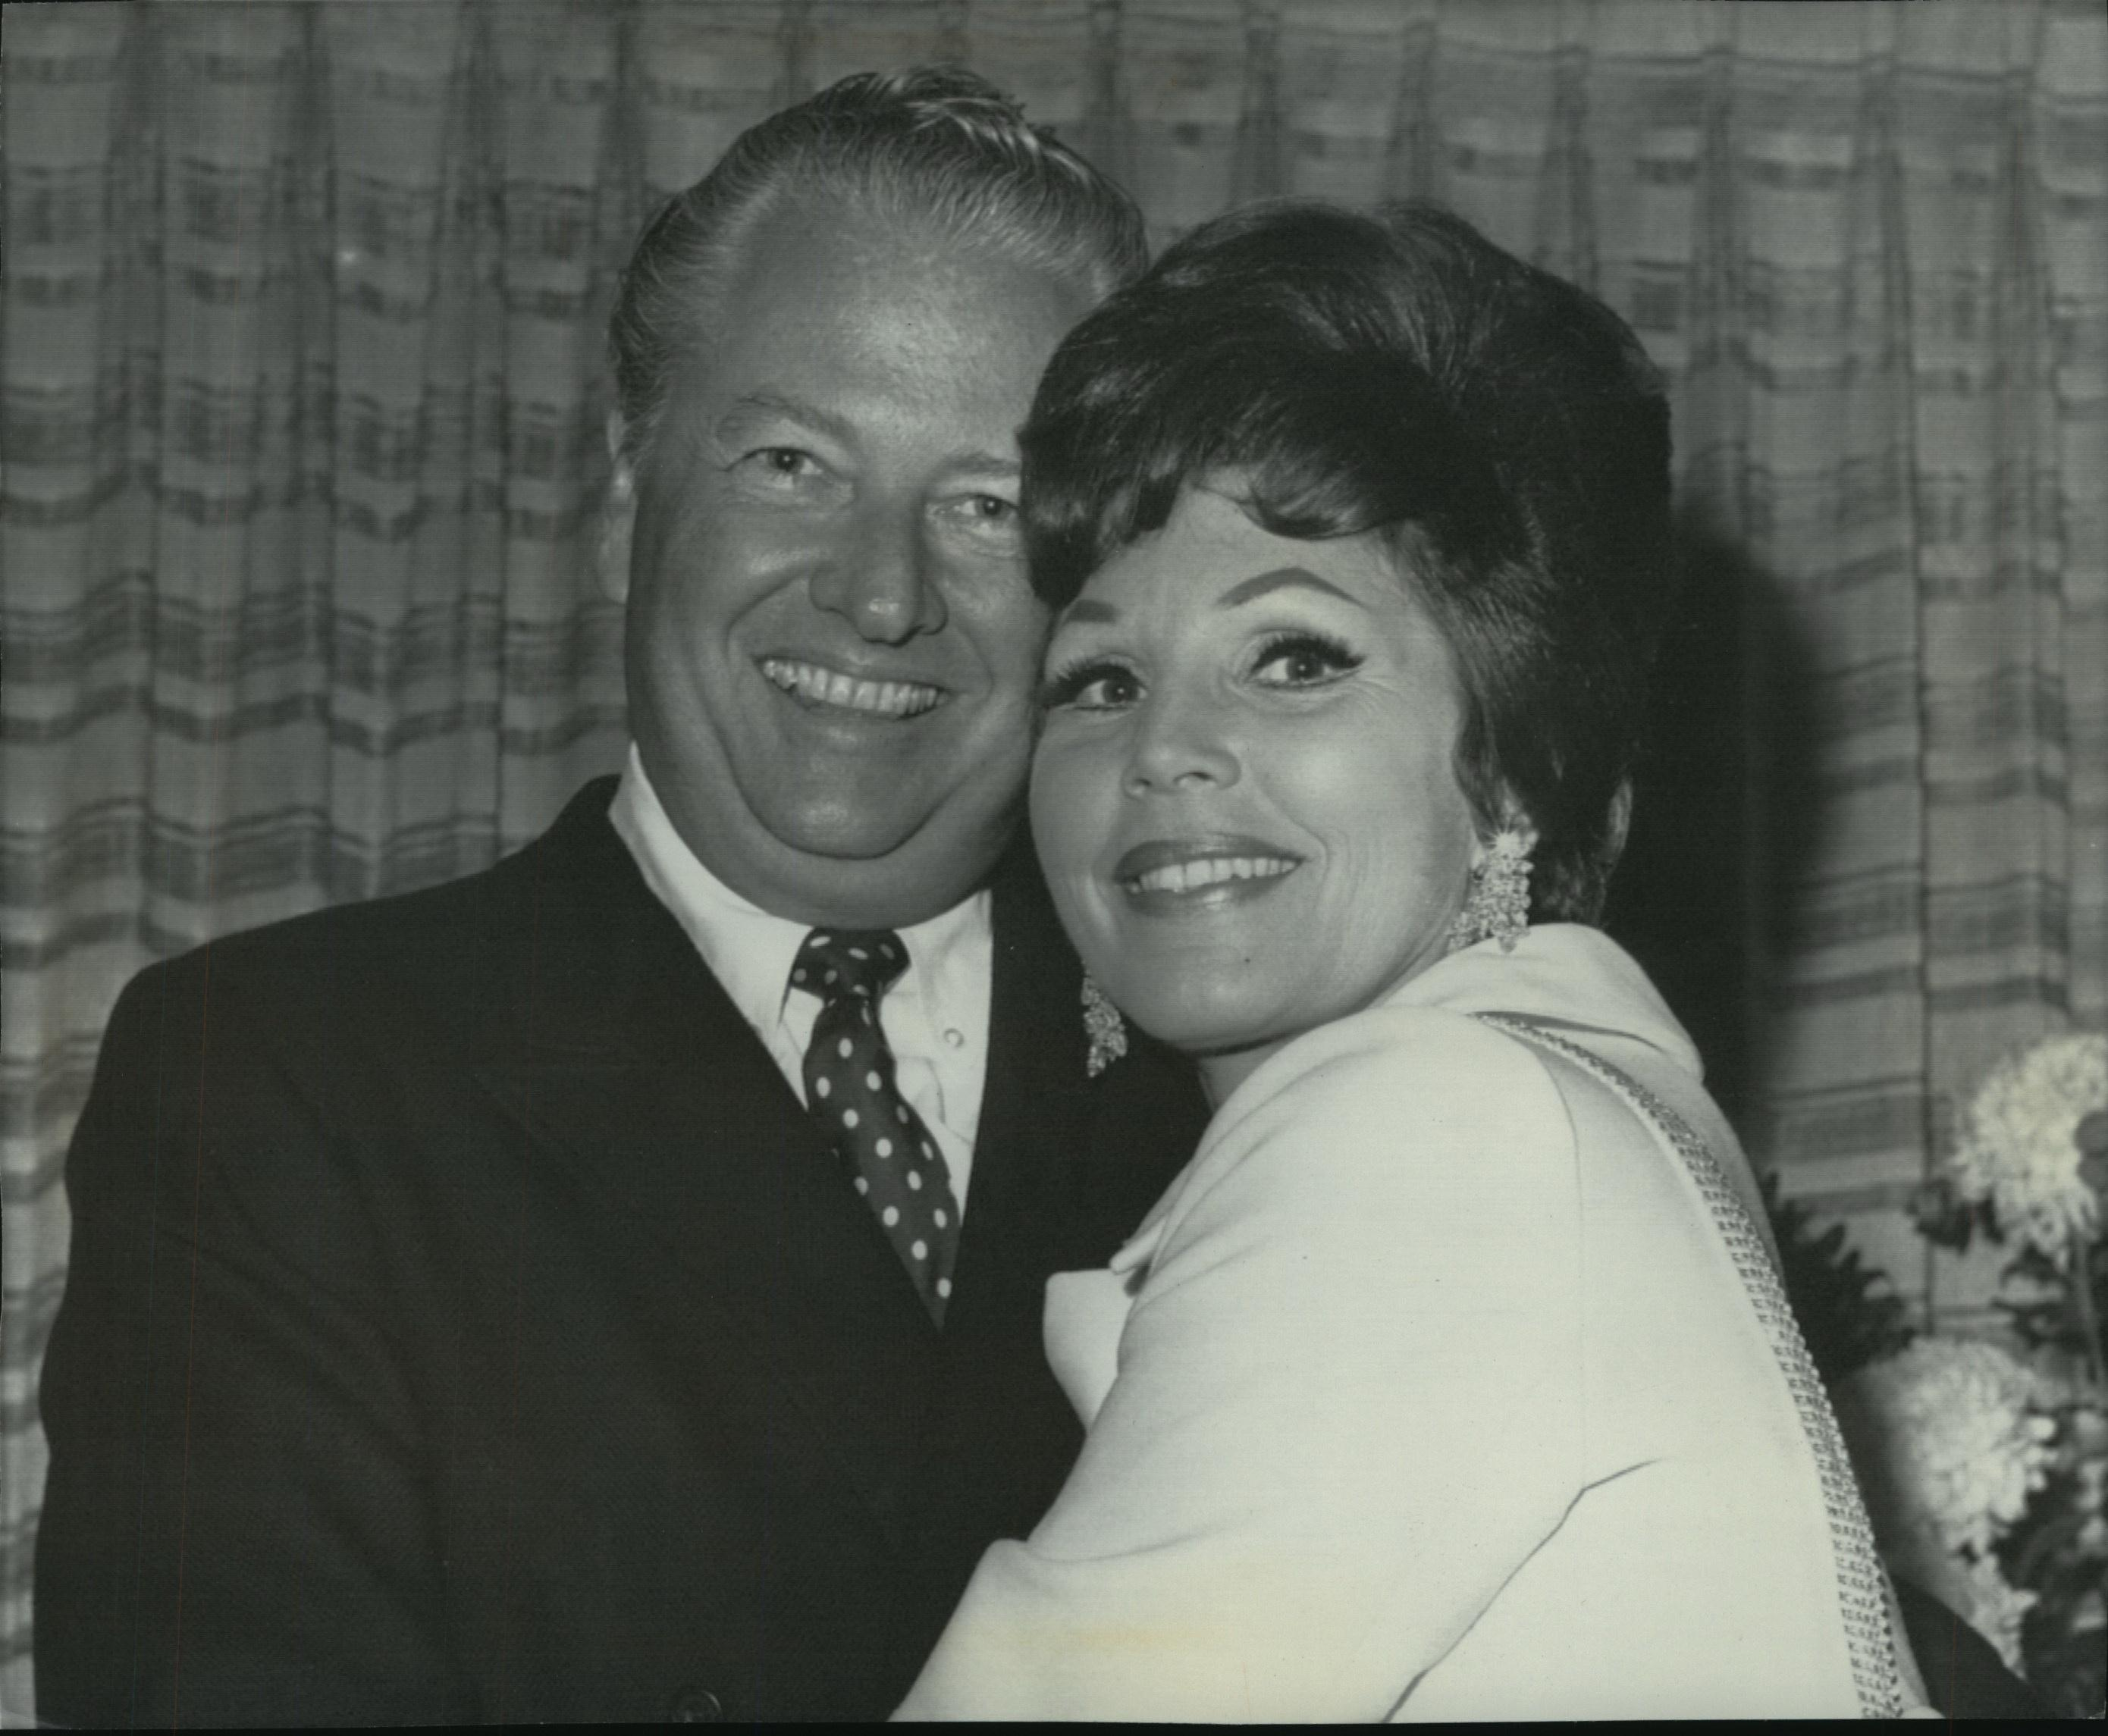 Christine Mcguire Eldest Sister In Popular 1950s Trio The Mcguire Sisters Dies At 92 The Spokesman Review During translation in the ulster plantation, various english translations of the original mag uidhir appeared, including mc guire, maguire, mac guire and mcguire. the spokesman review